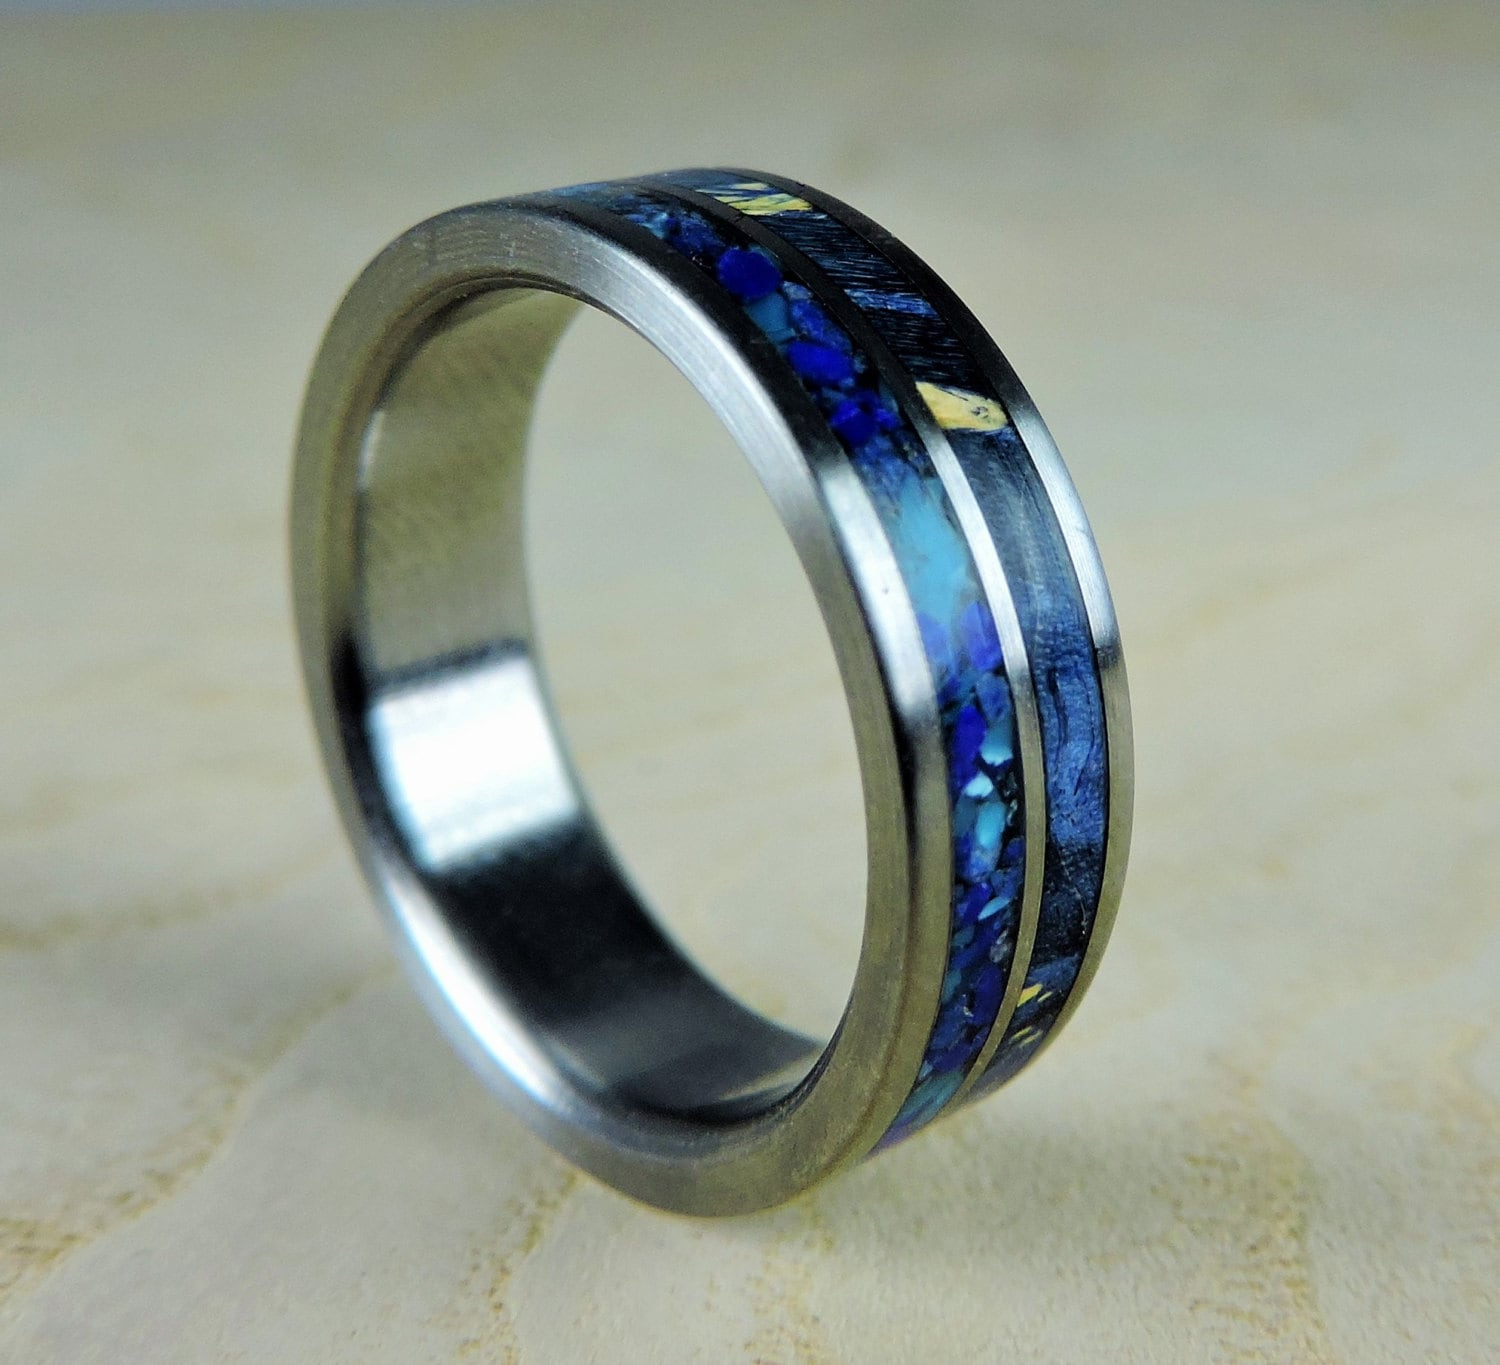 friend of band my kevin bands on out onlinemetals wedding manual purchased rings they blogonline from online machined blog titanium metals were made this a lathe img for and mill